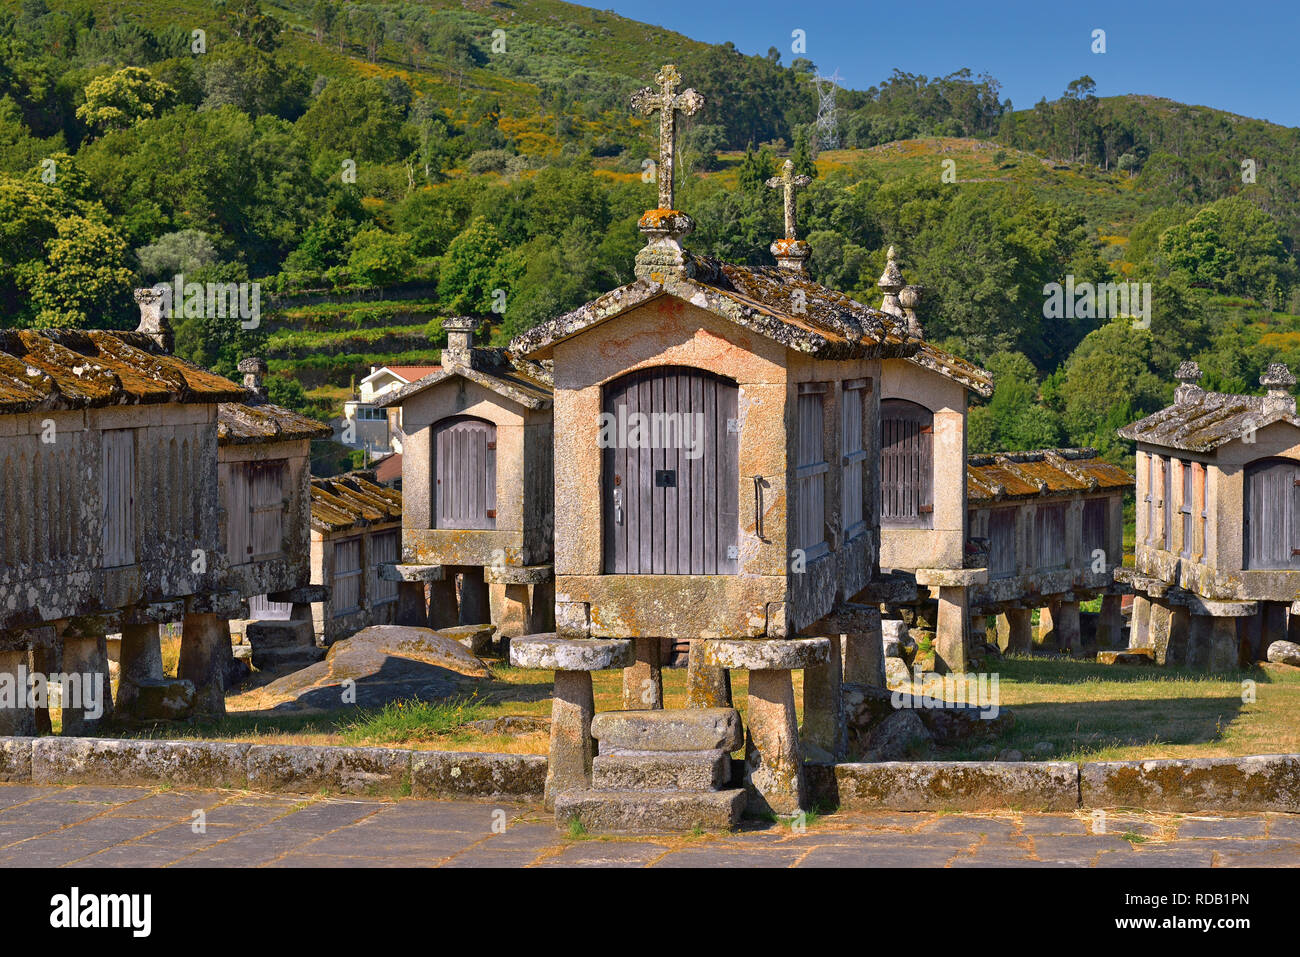 Traditional granite stone corn storages in northern Portugal - Stock Image